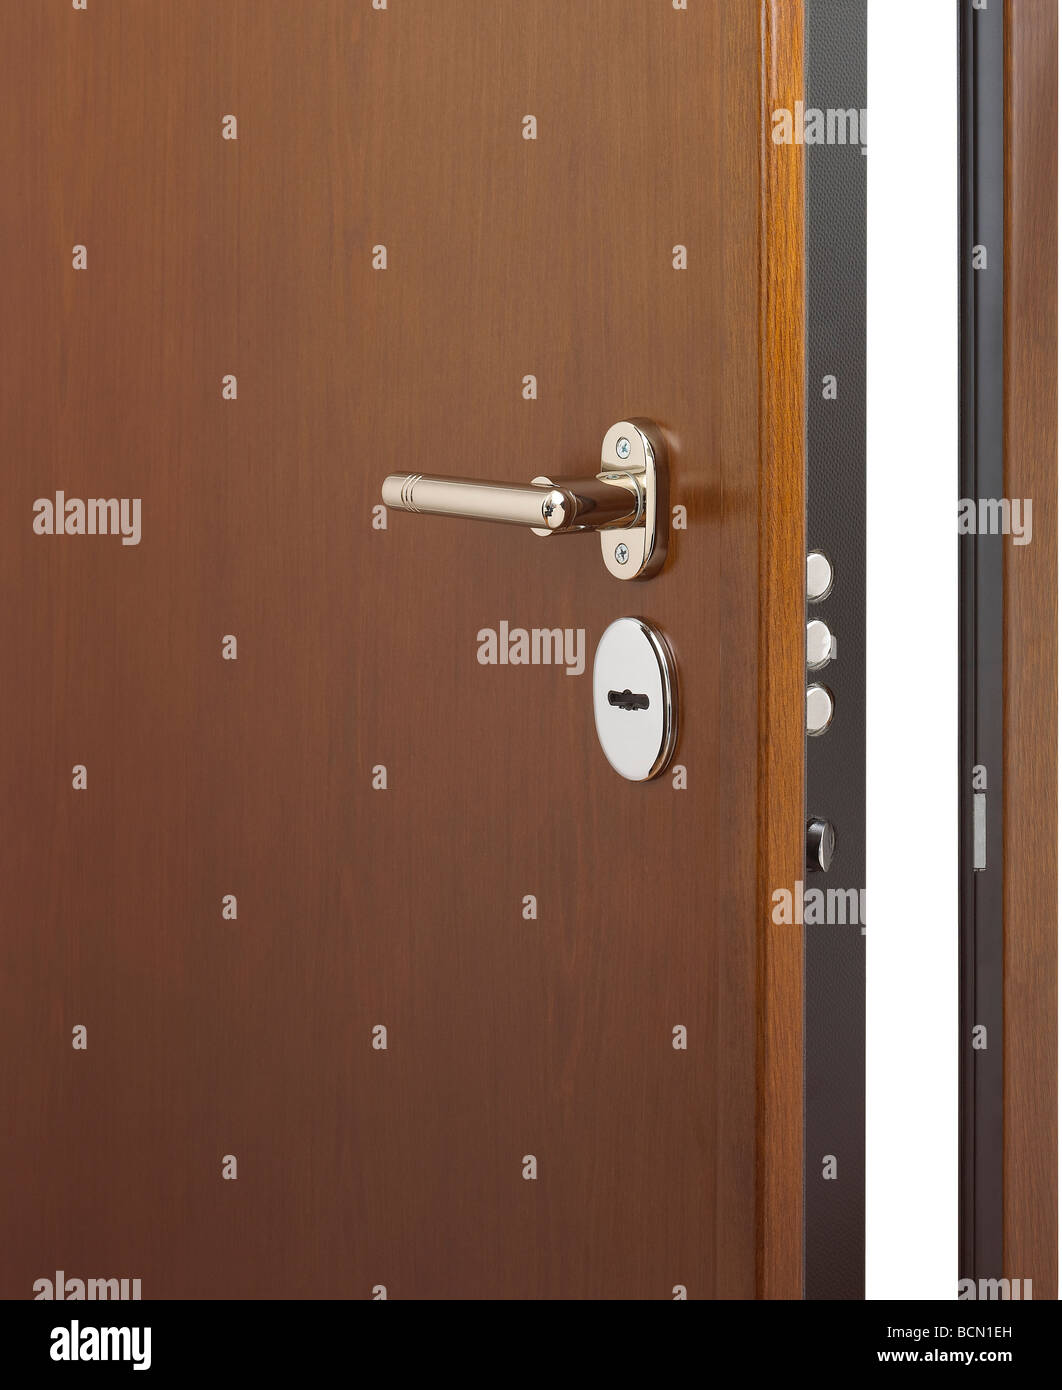 A half opened secure door on white background. - Stock Image